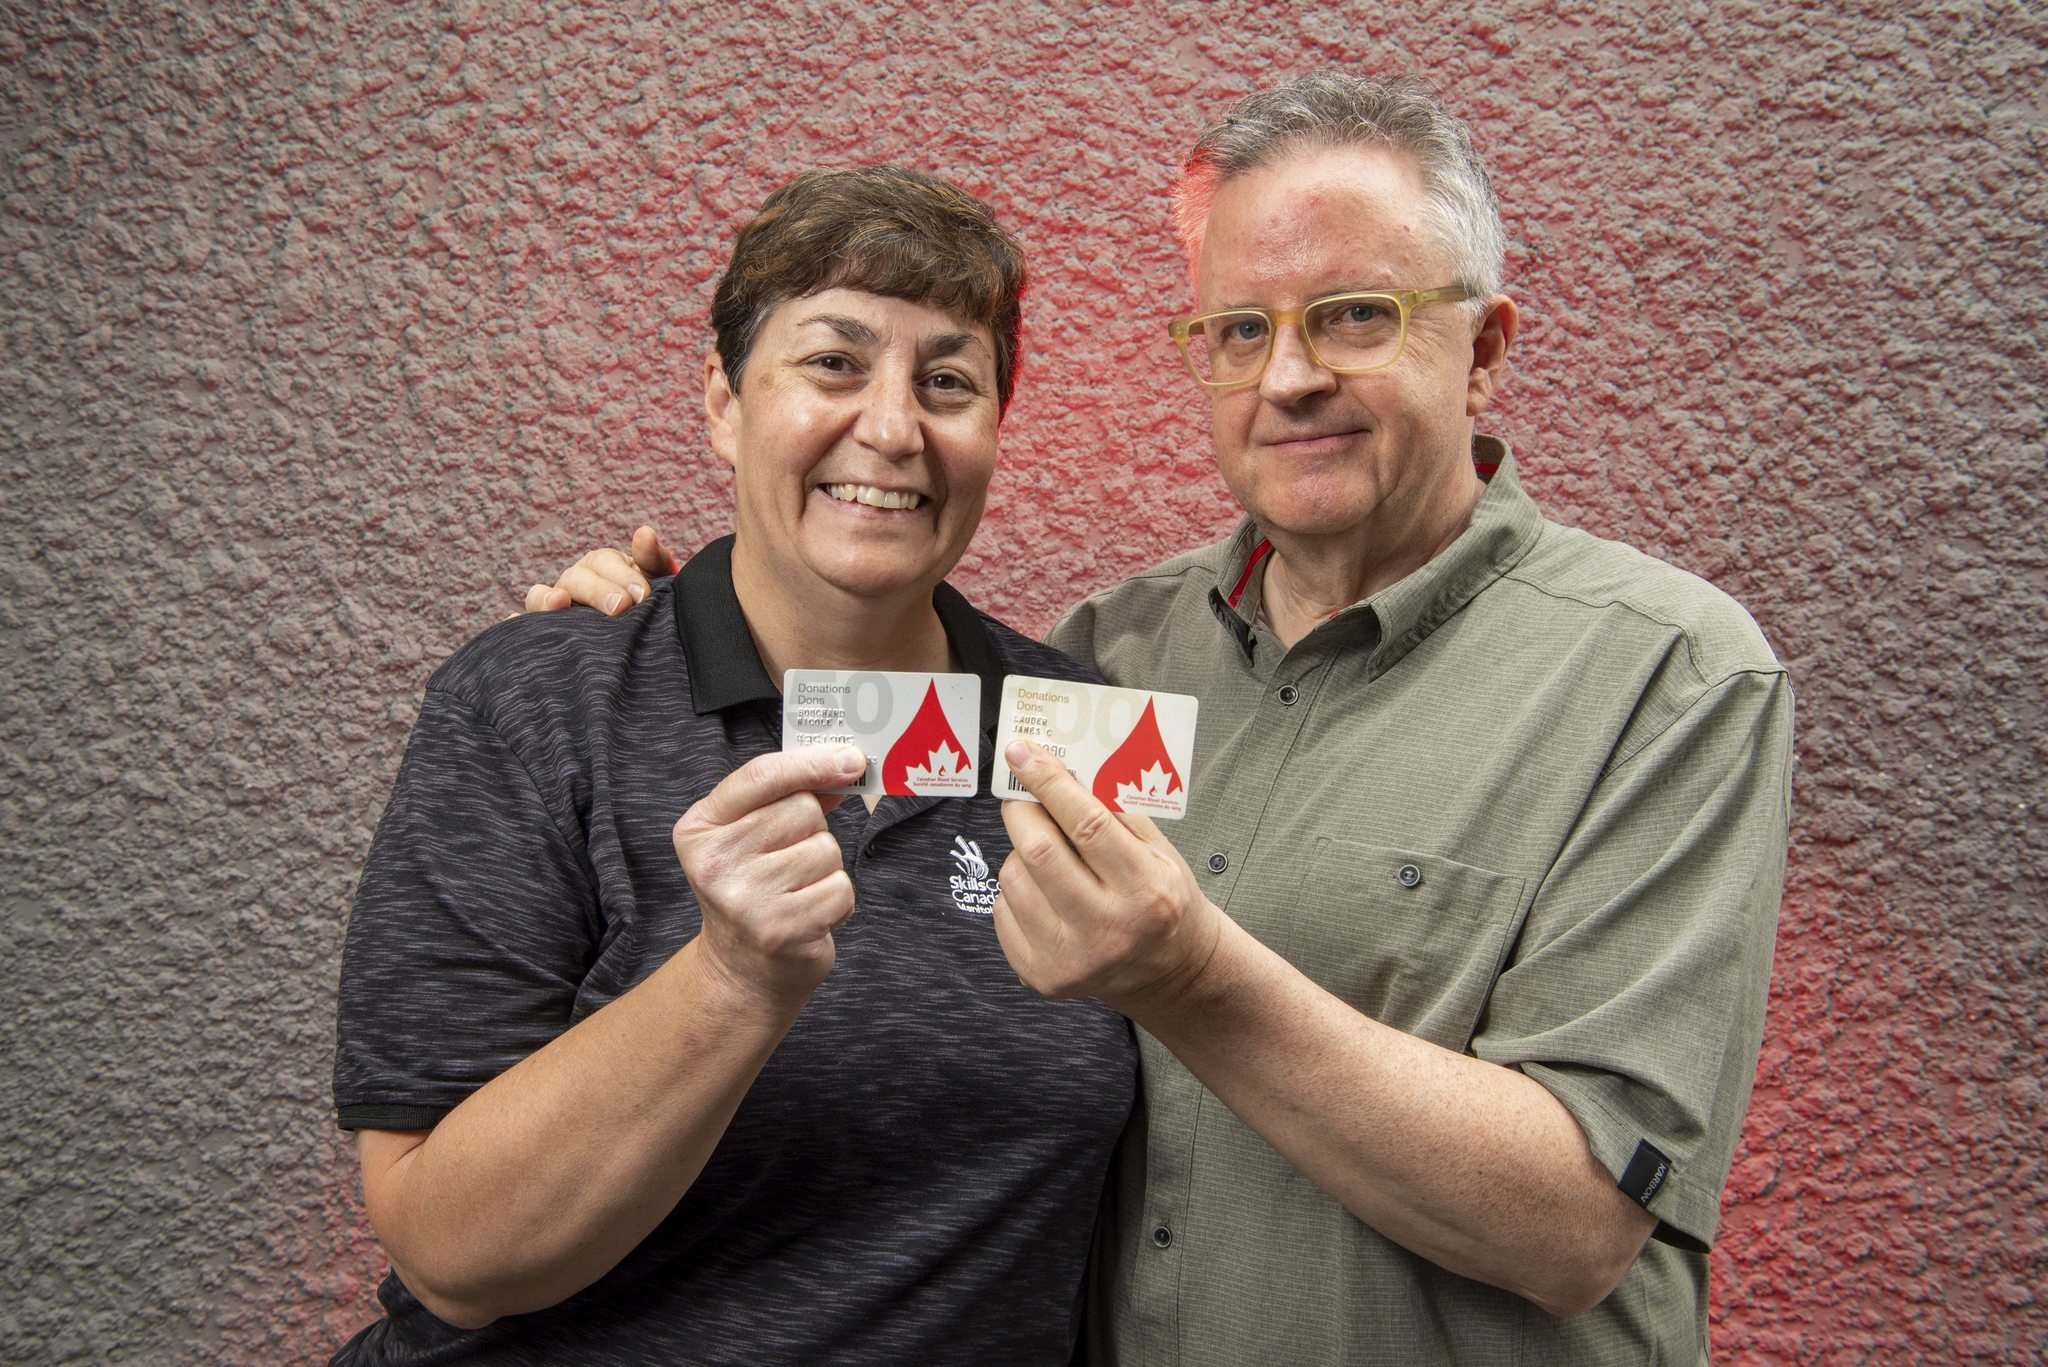 Nicole Bouchard and Carey Lauder display their donation cards. Both are longtime blood donors, with Bouchard at 75 donations and Lauder at 130 donations. (Alex Lupul / Winnipeg Free Press)